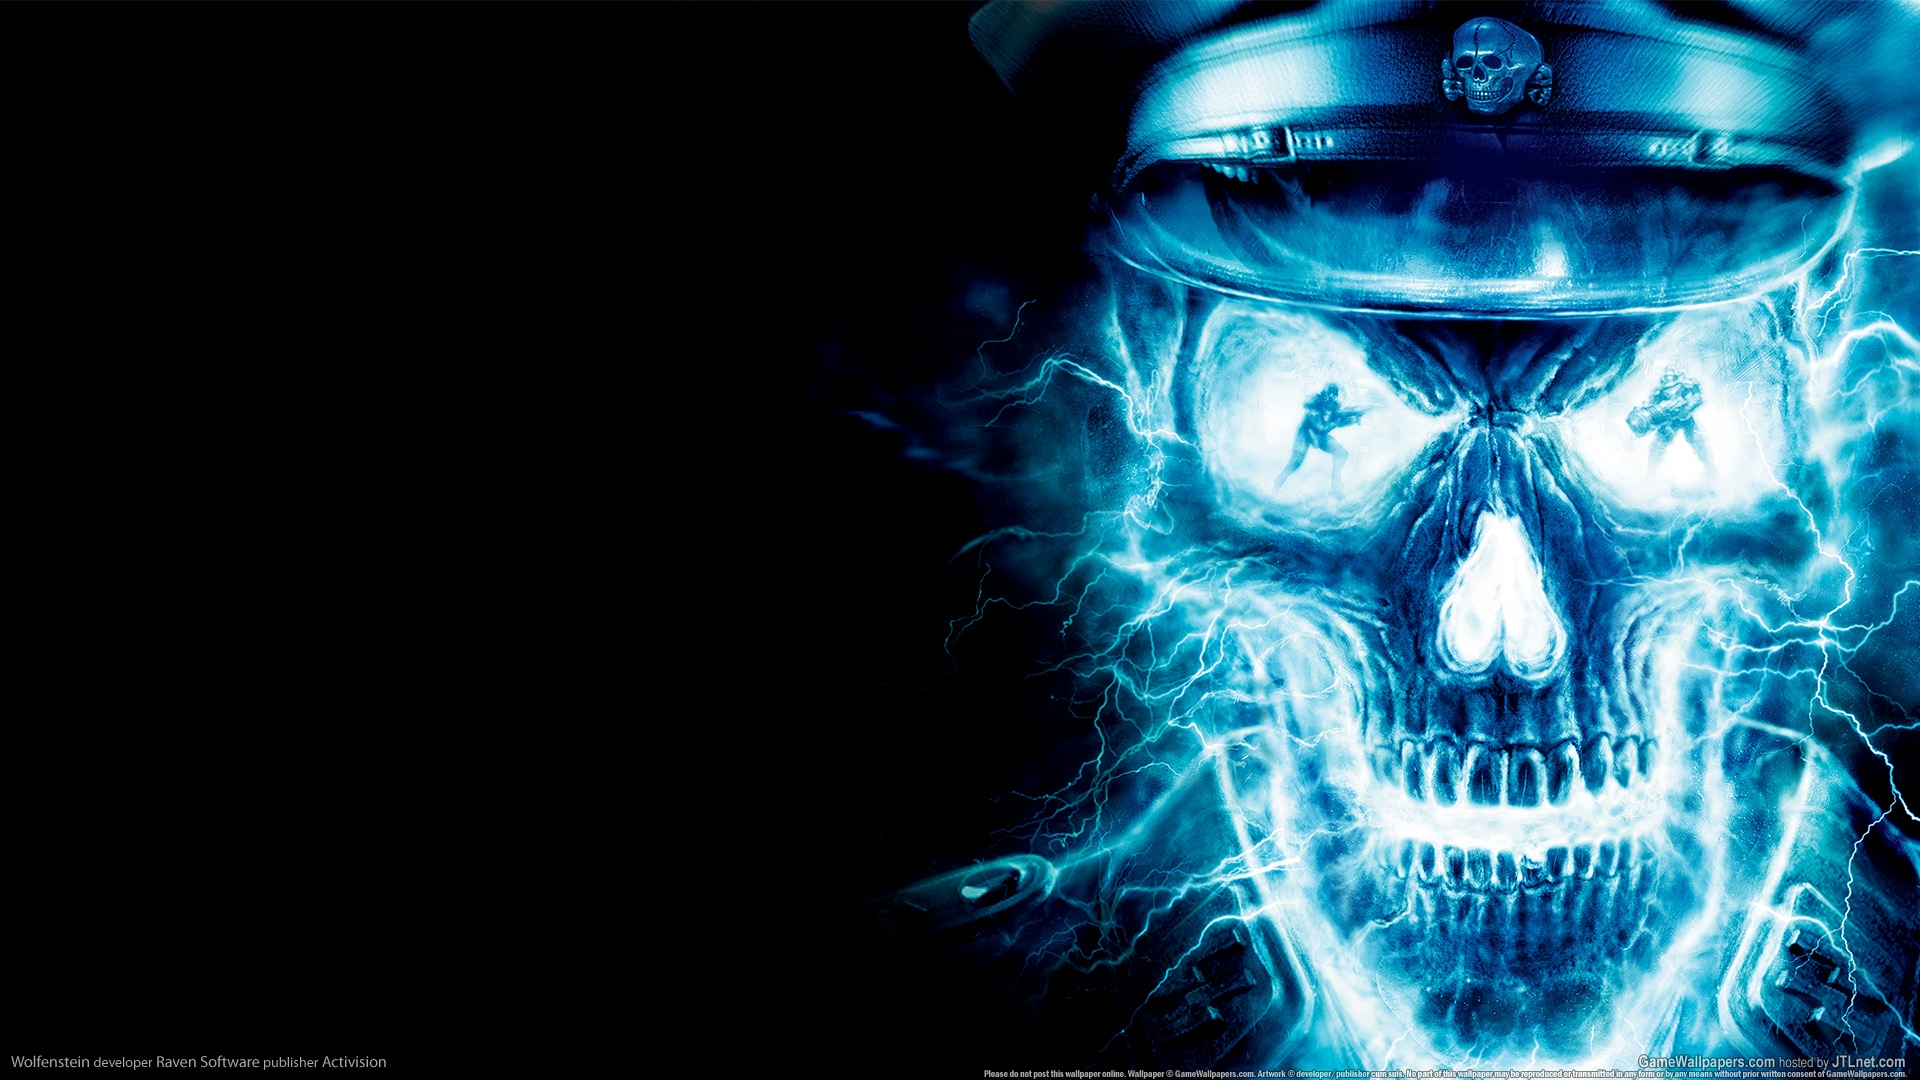 Cool-Skulls-Pulse-1920%C3%971080-Awesome-skull-backgrounds-Adorab-wallpaper-wp3804050